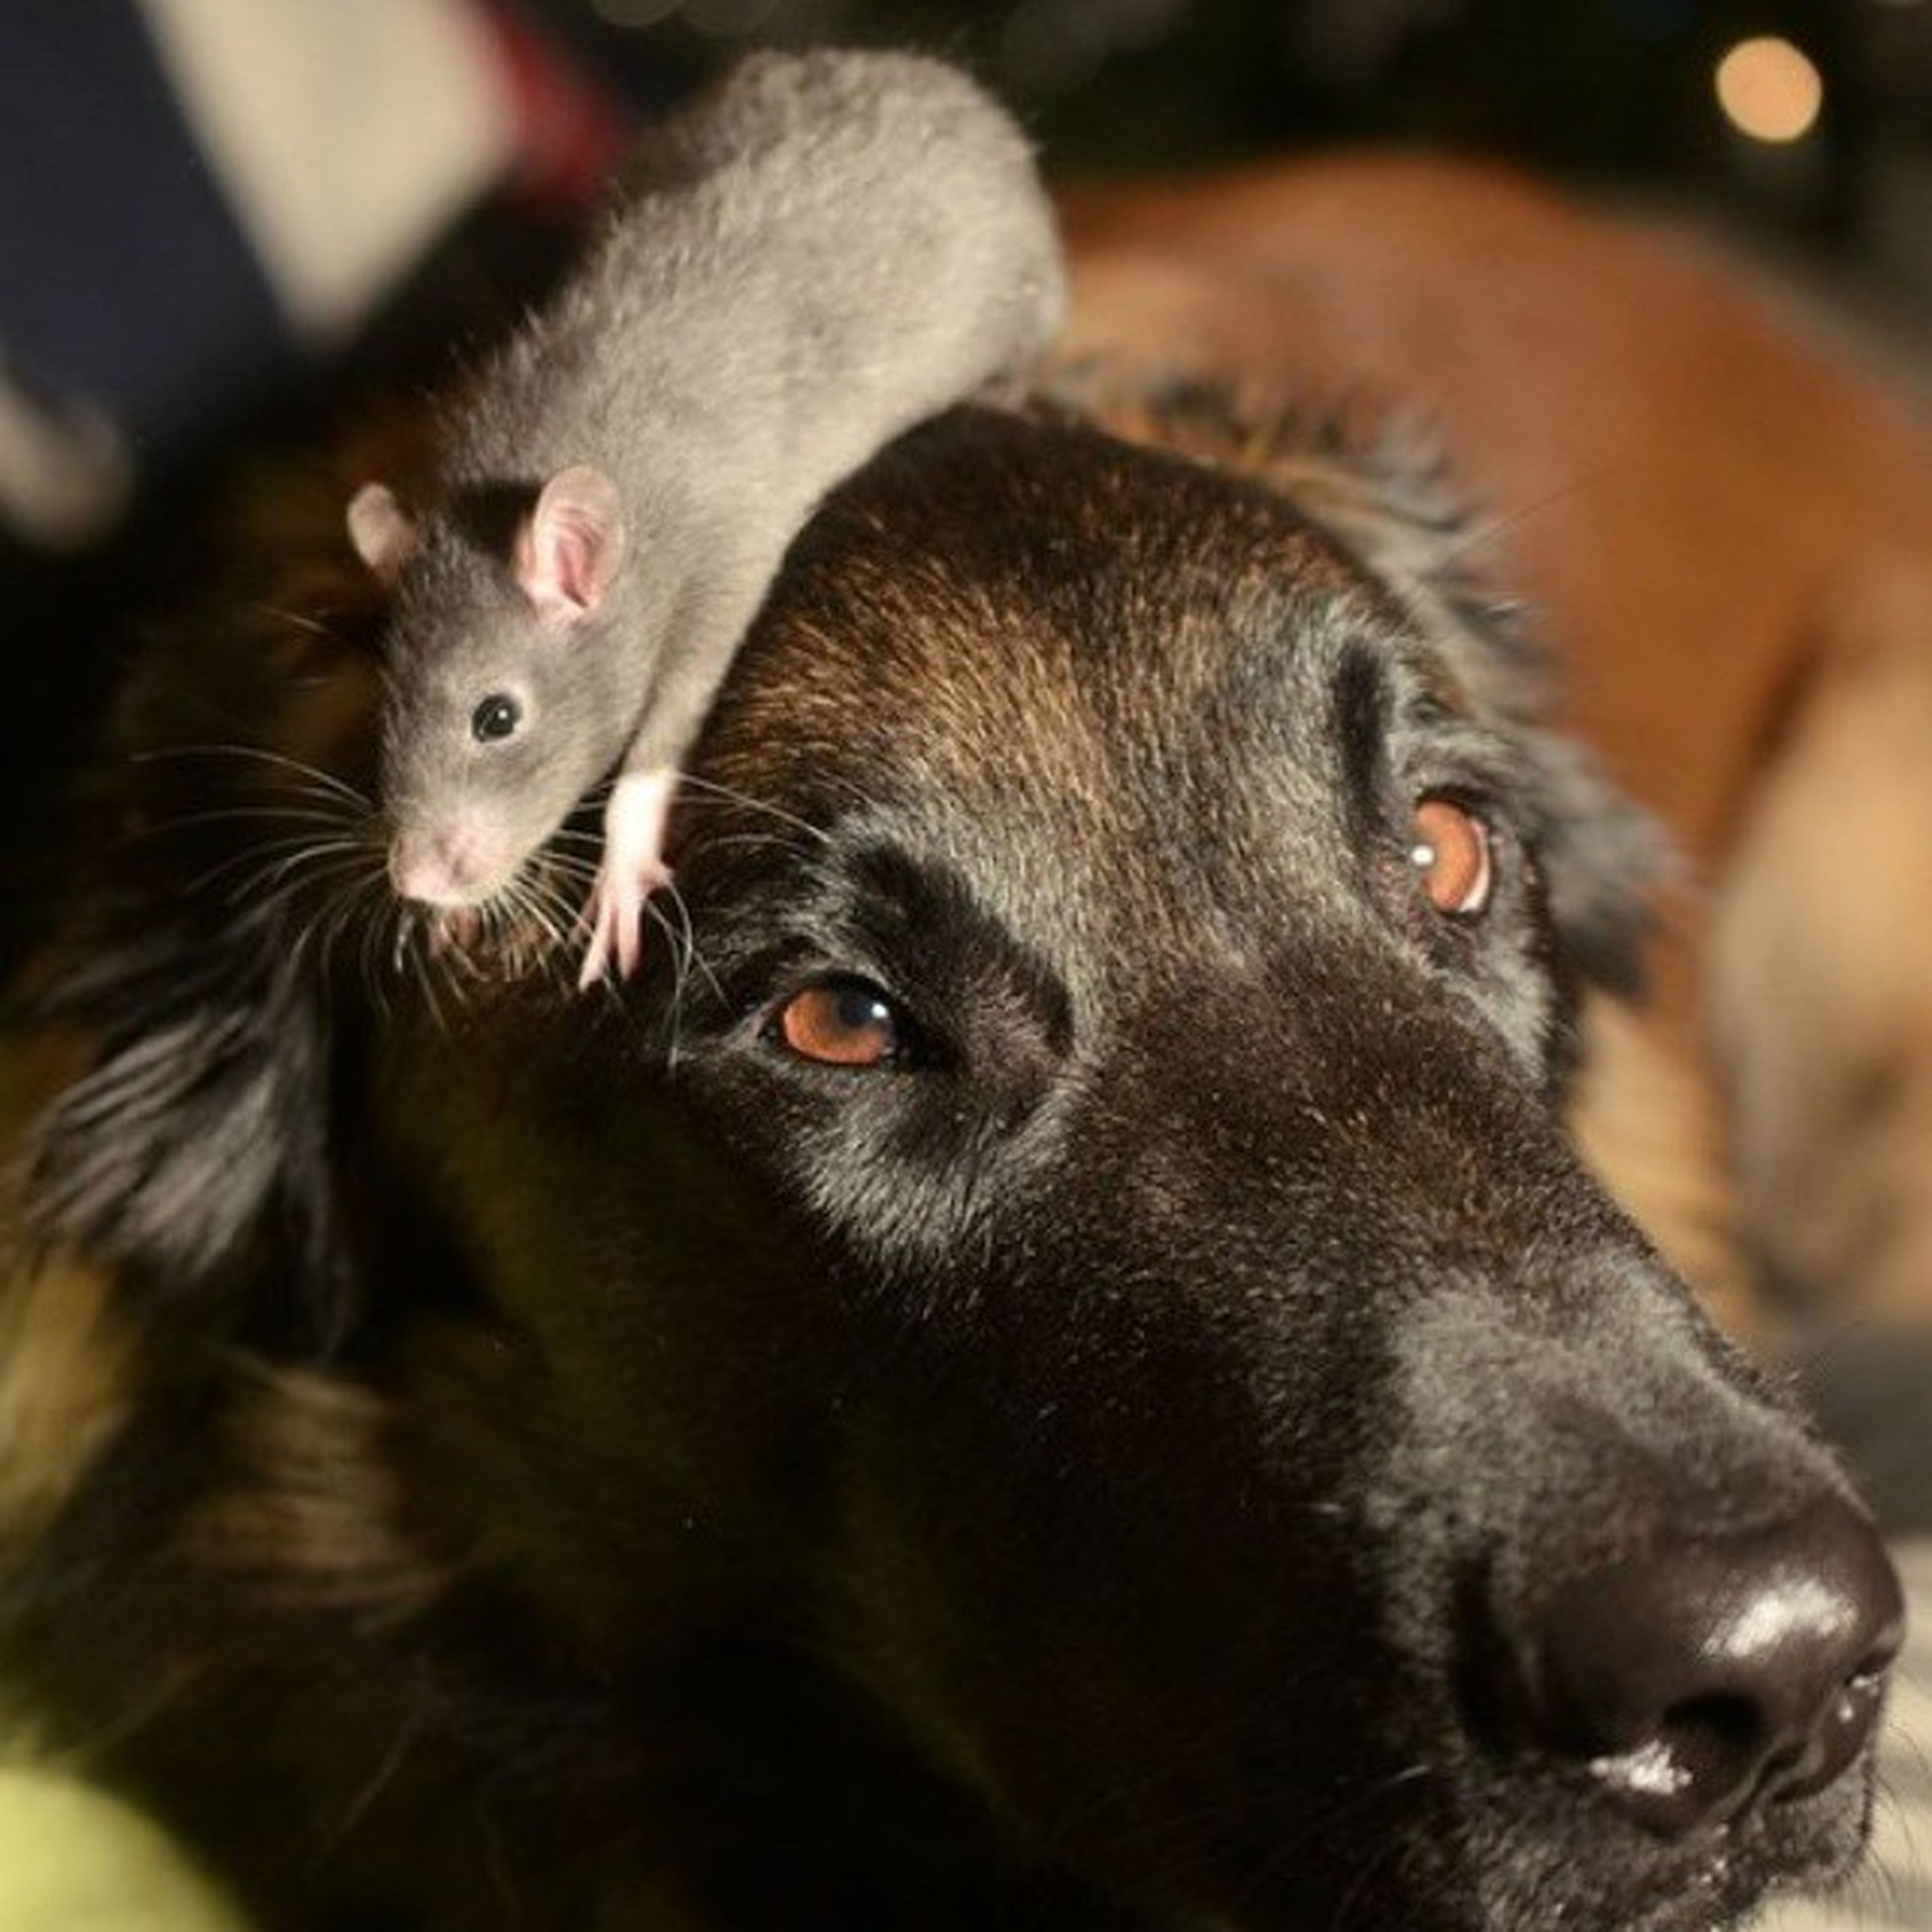 animal themes, domestic animals, mammal, pets, one animal, dog, focus on foreground, portrait, looking at camera, close-up, two animals, young animal, animal head, selective focus, no people, indoors, black color, cute, day